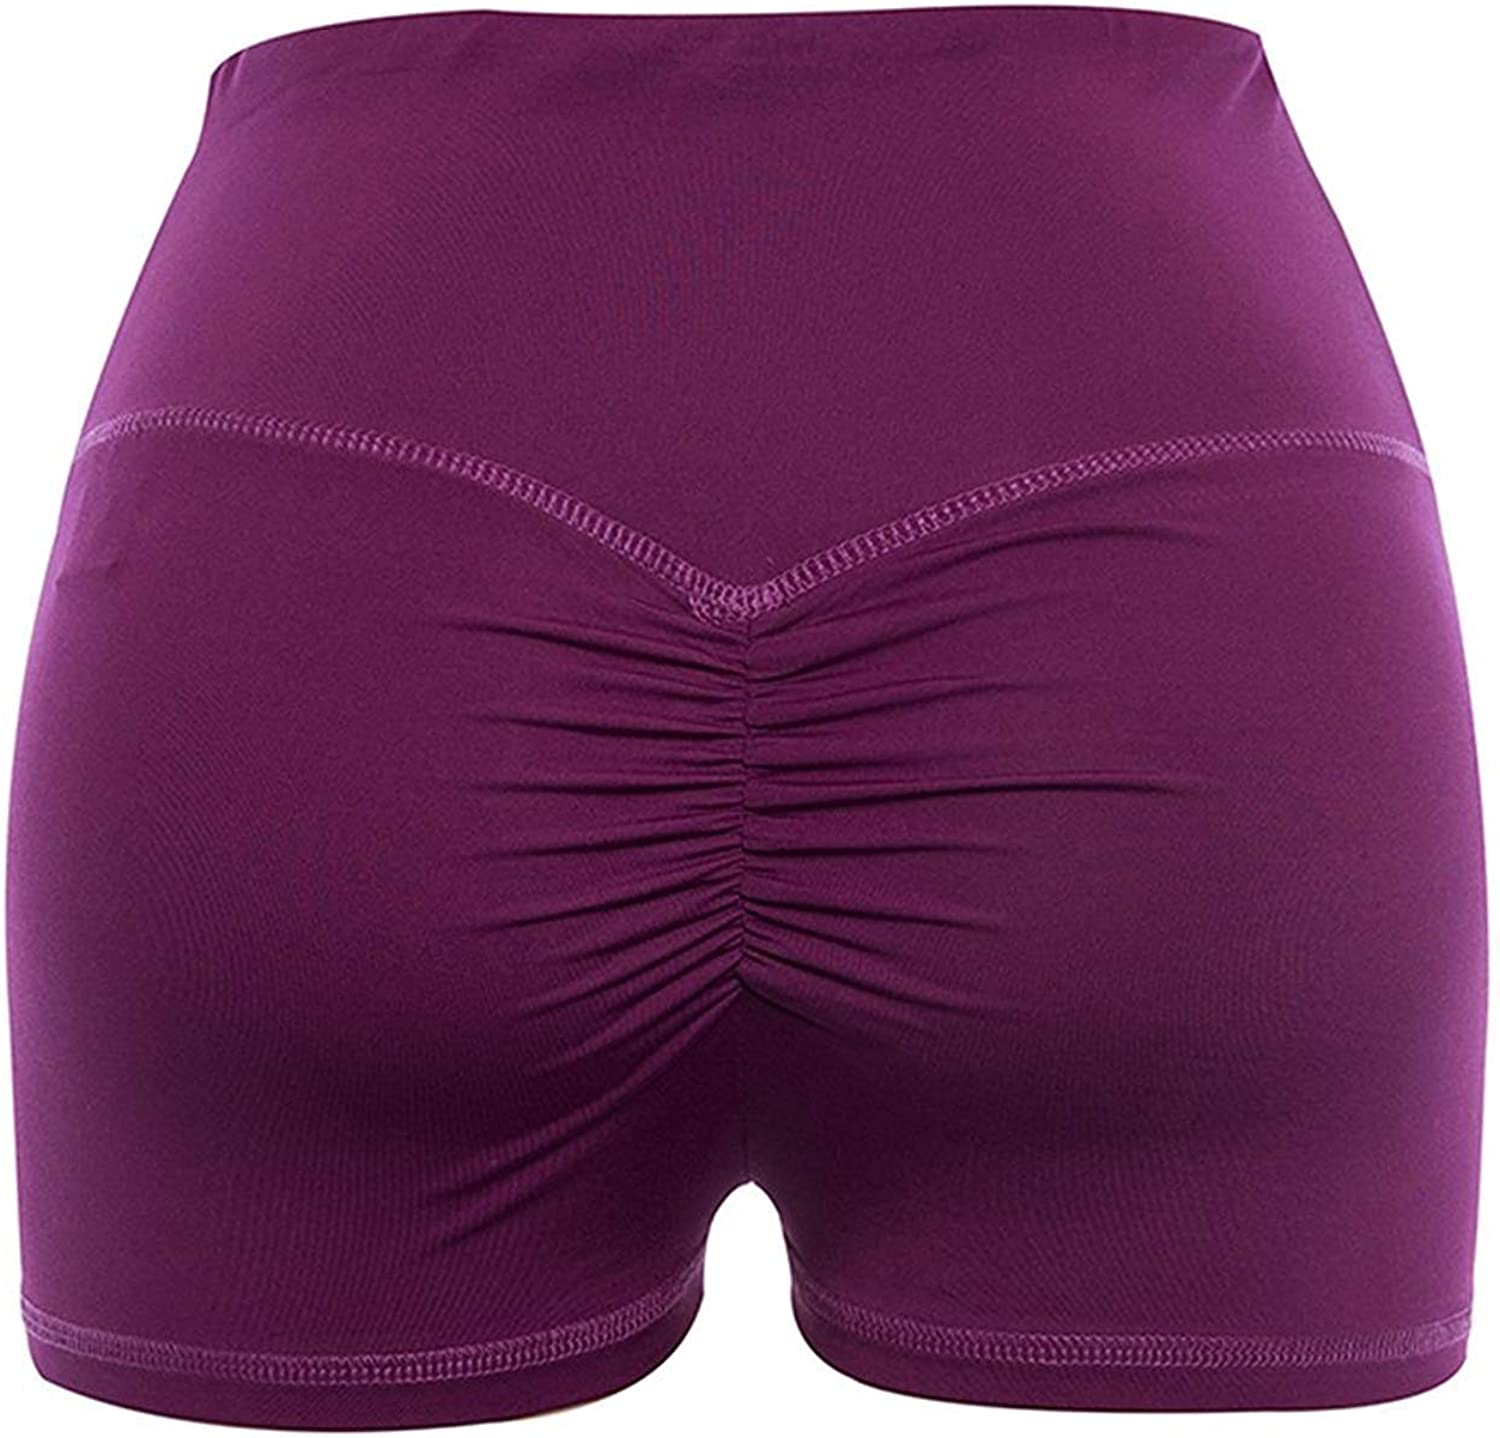 lumiyo Womens Sport Fitness Gym Stretchy High Waisted Ruched Butt Lifting Workout Running Yoga Shorts